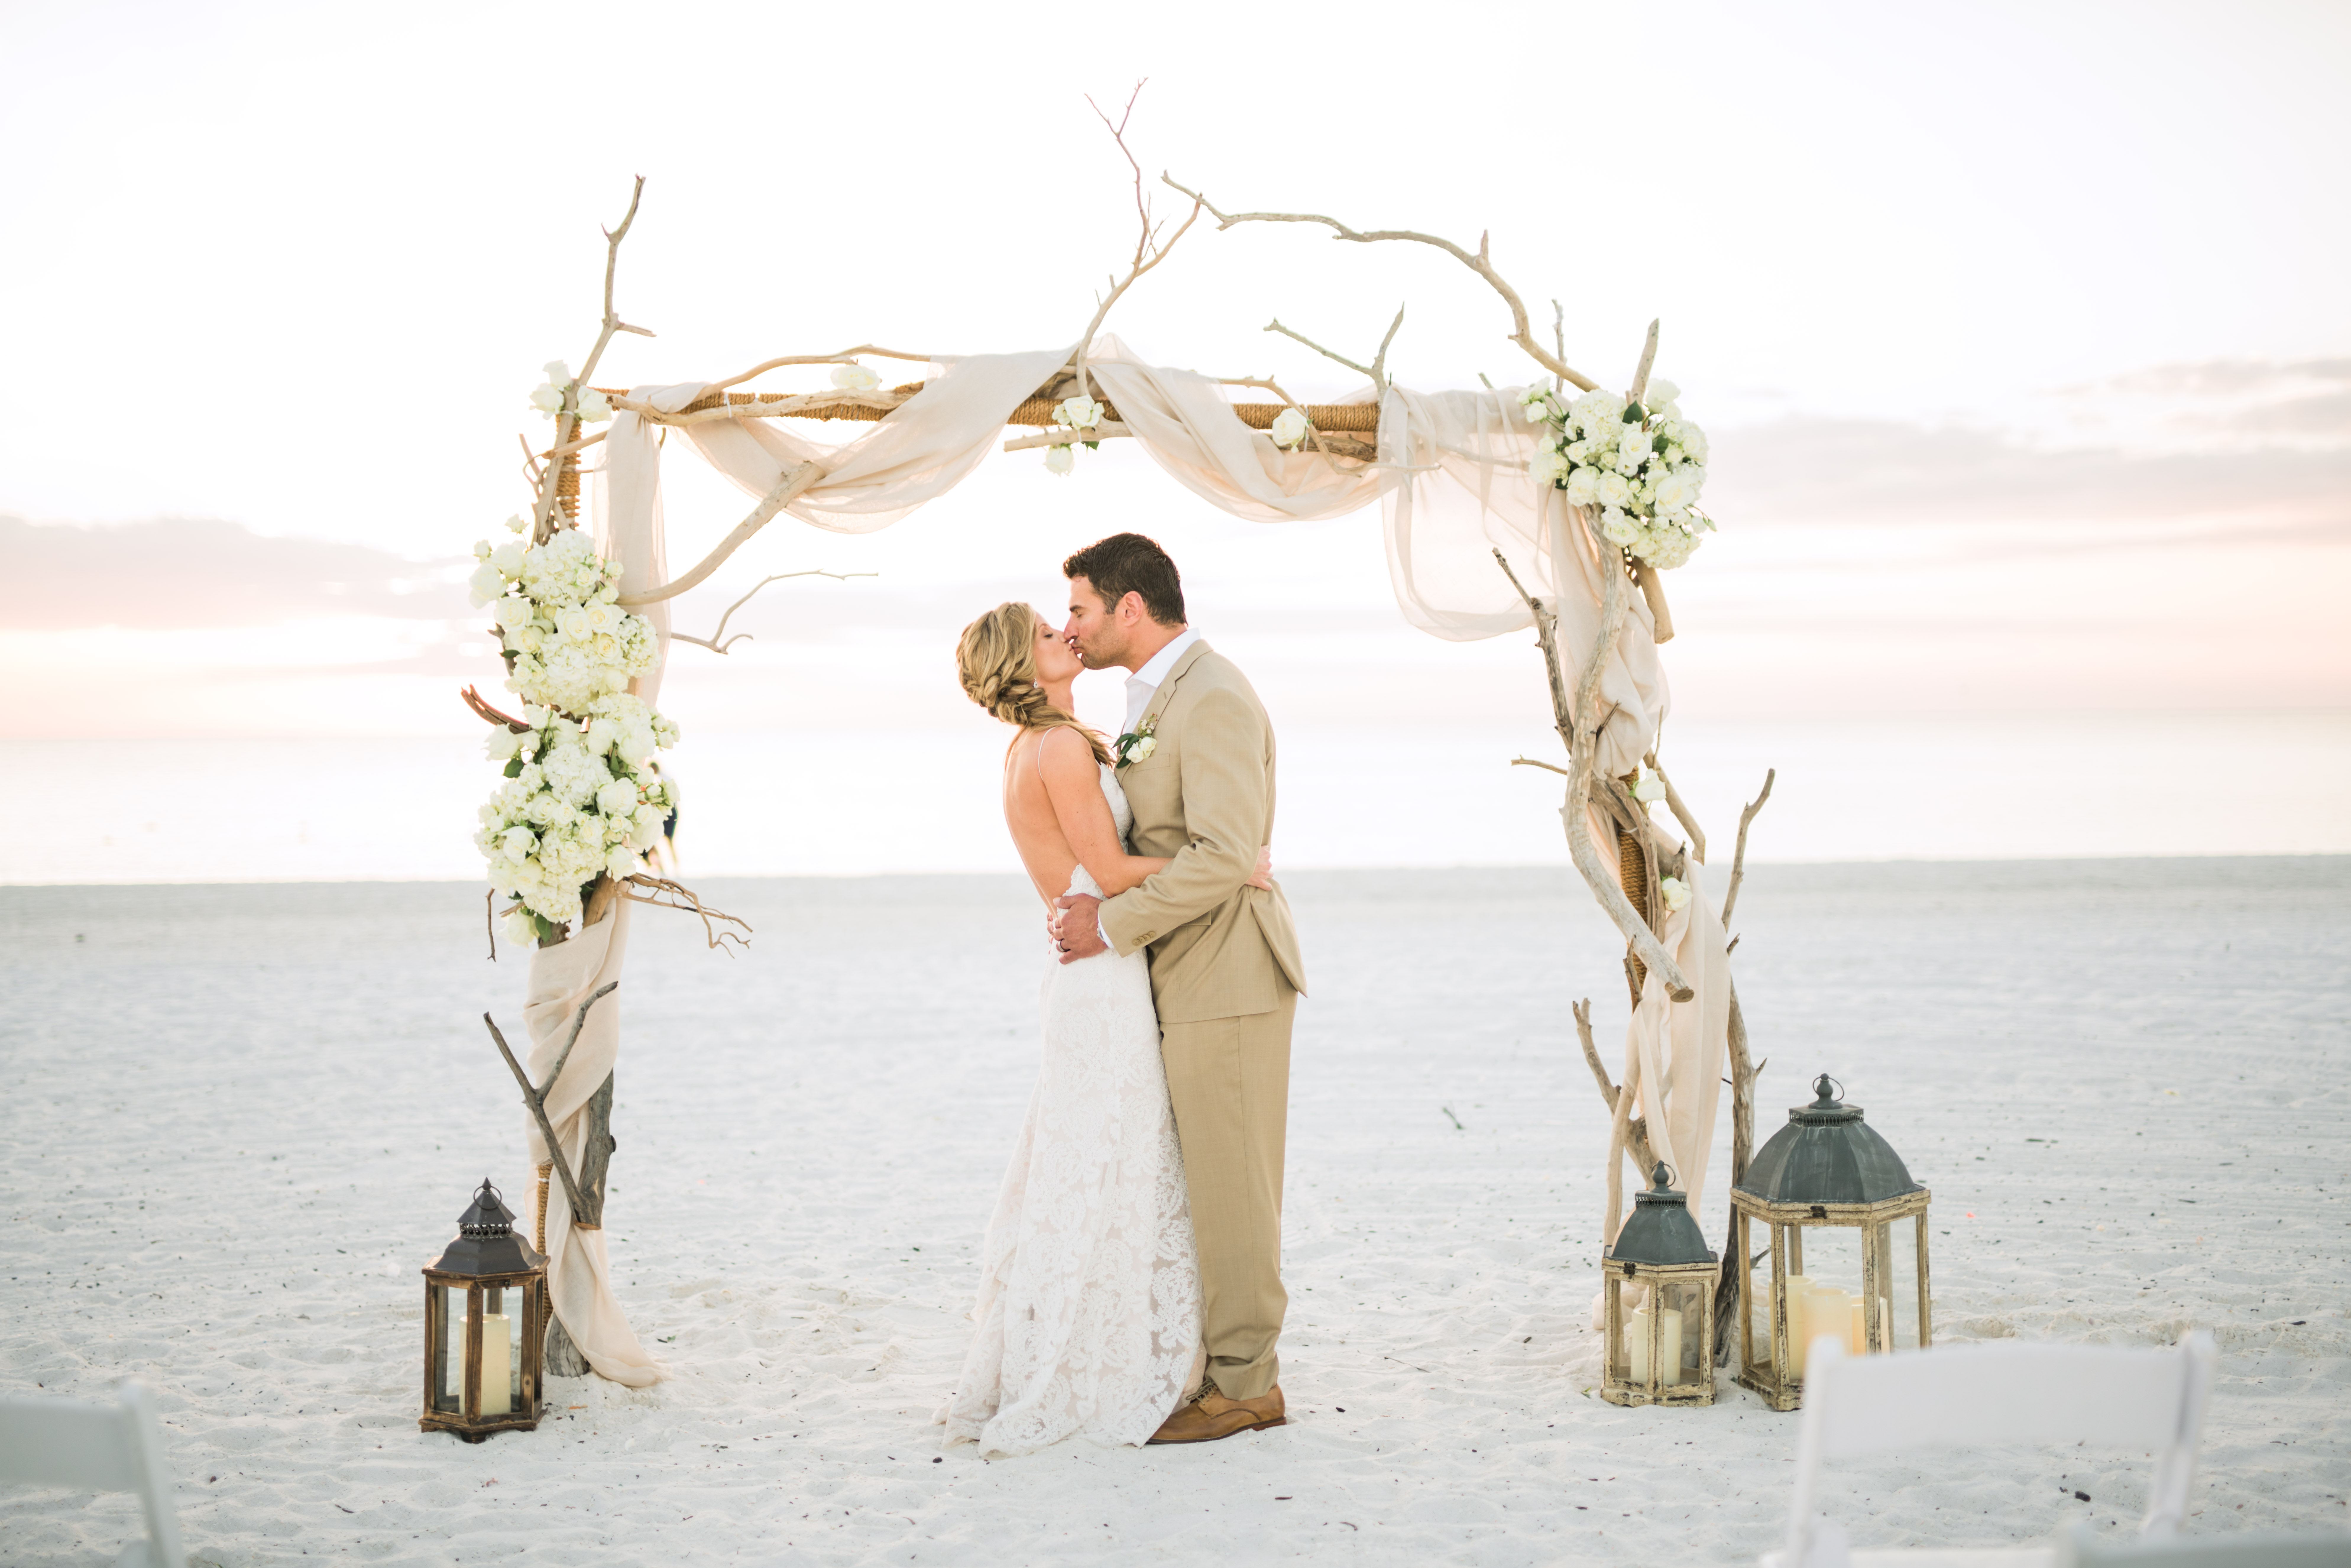 Along-came-stephanie-wedding-destination-planner-luxury-international-florida-naples-sarasota-captiva-island-sanibel-miami-designer-marco-island-54